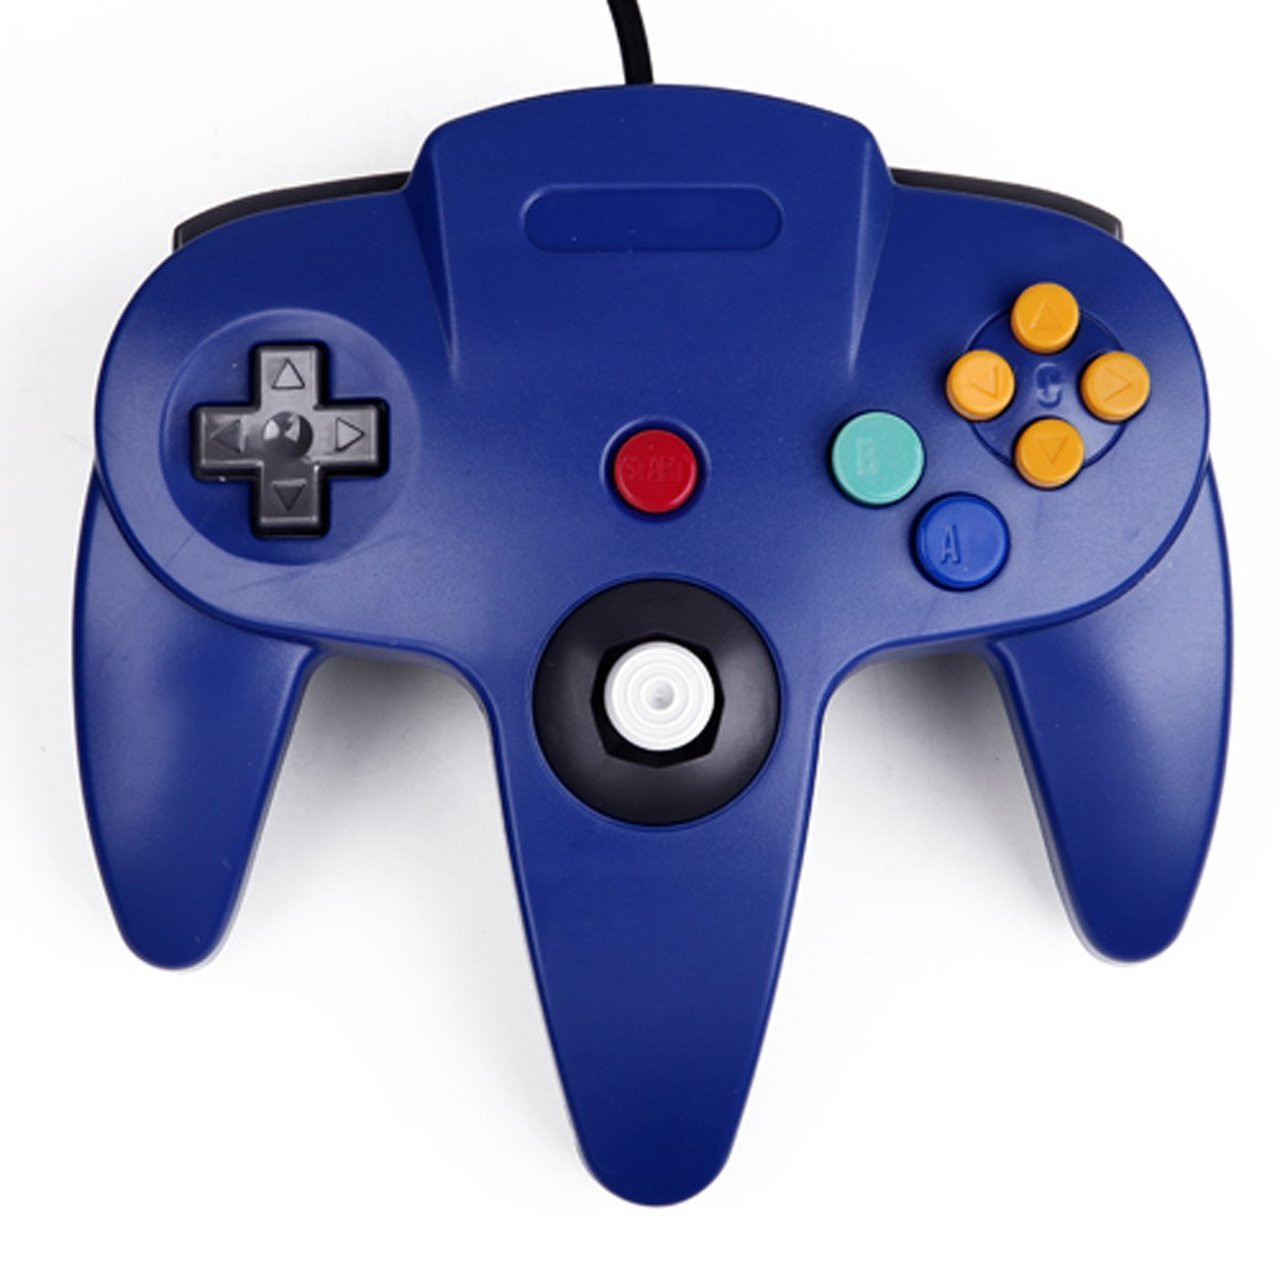 Image result for n64 controller""